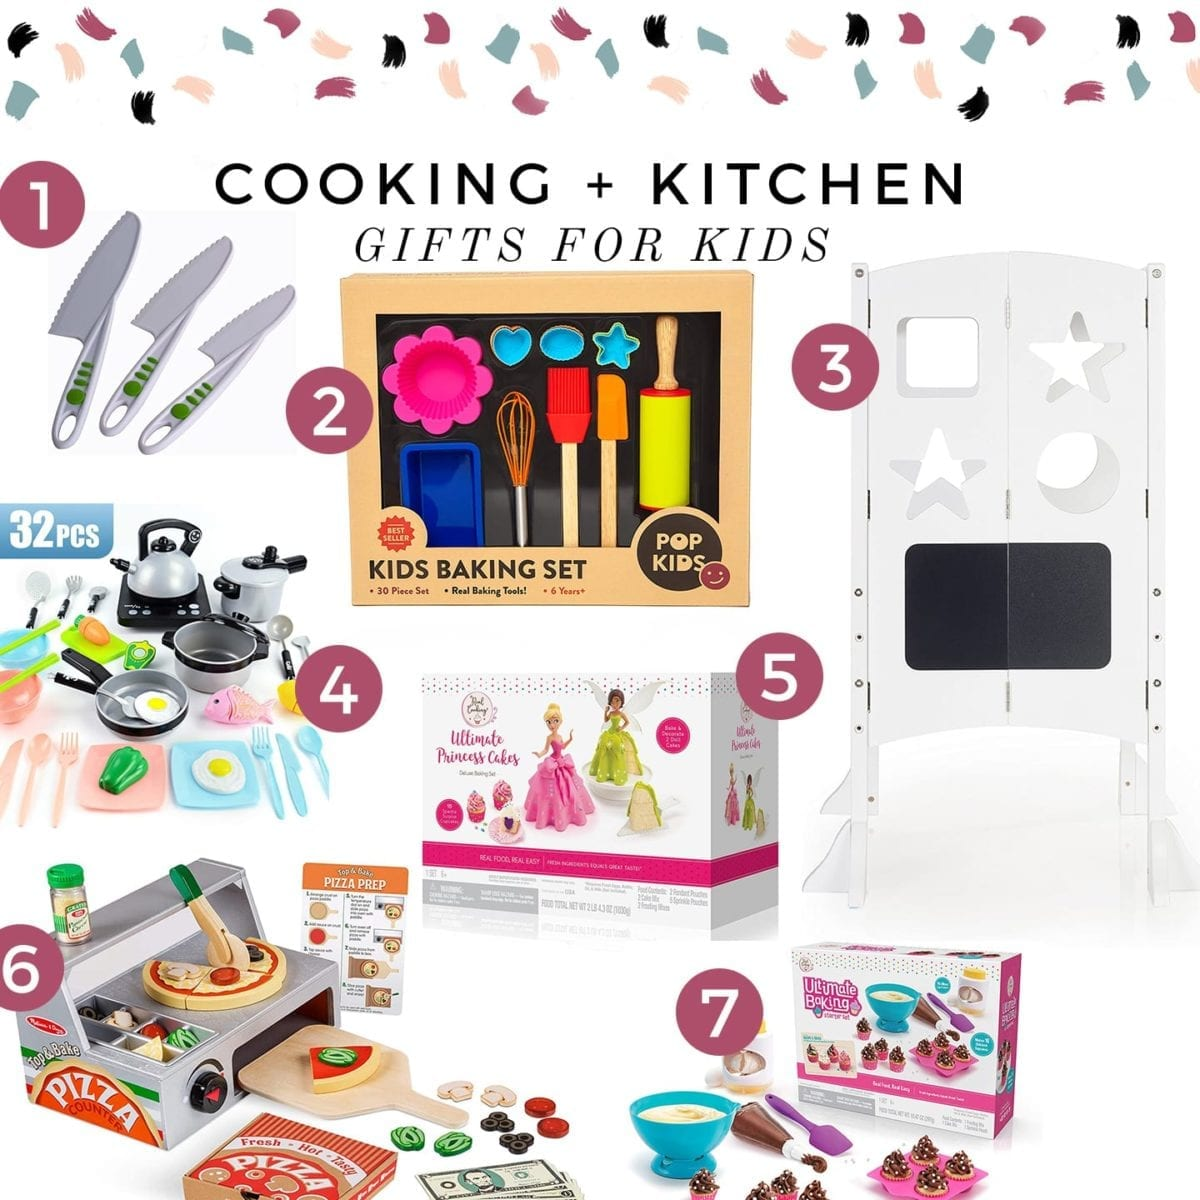 A collage including 10+ cooking gifts for kids